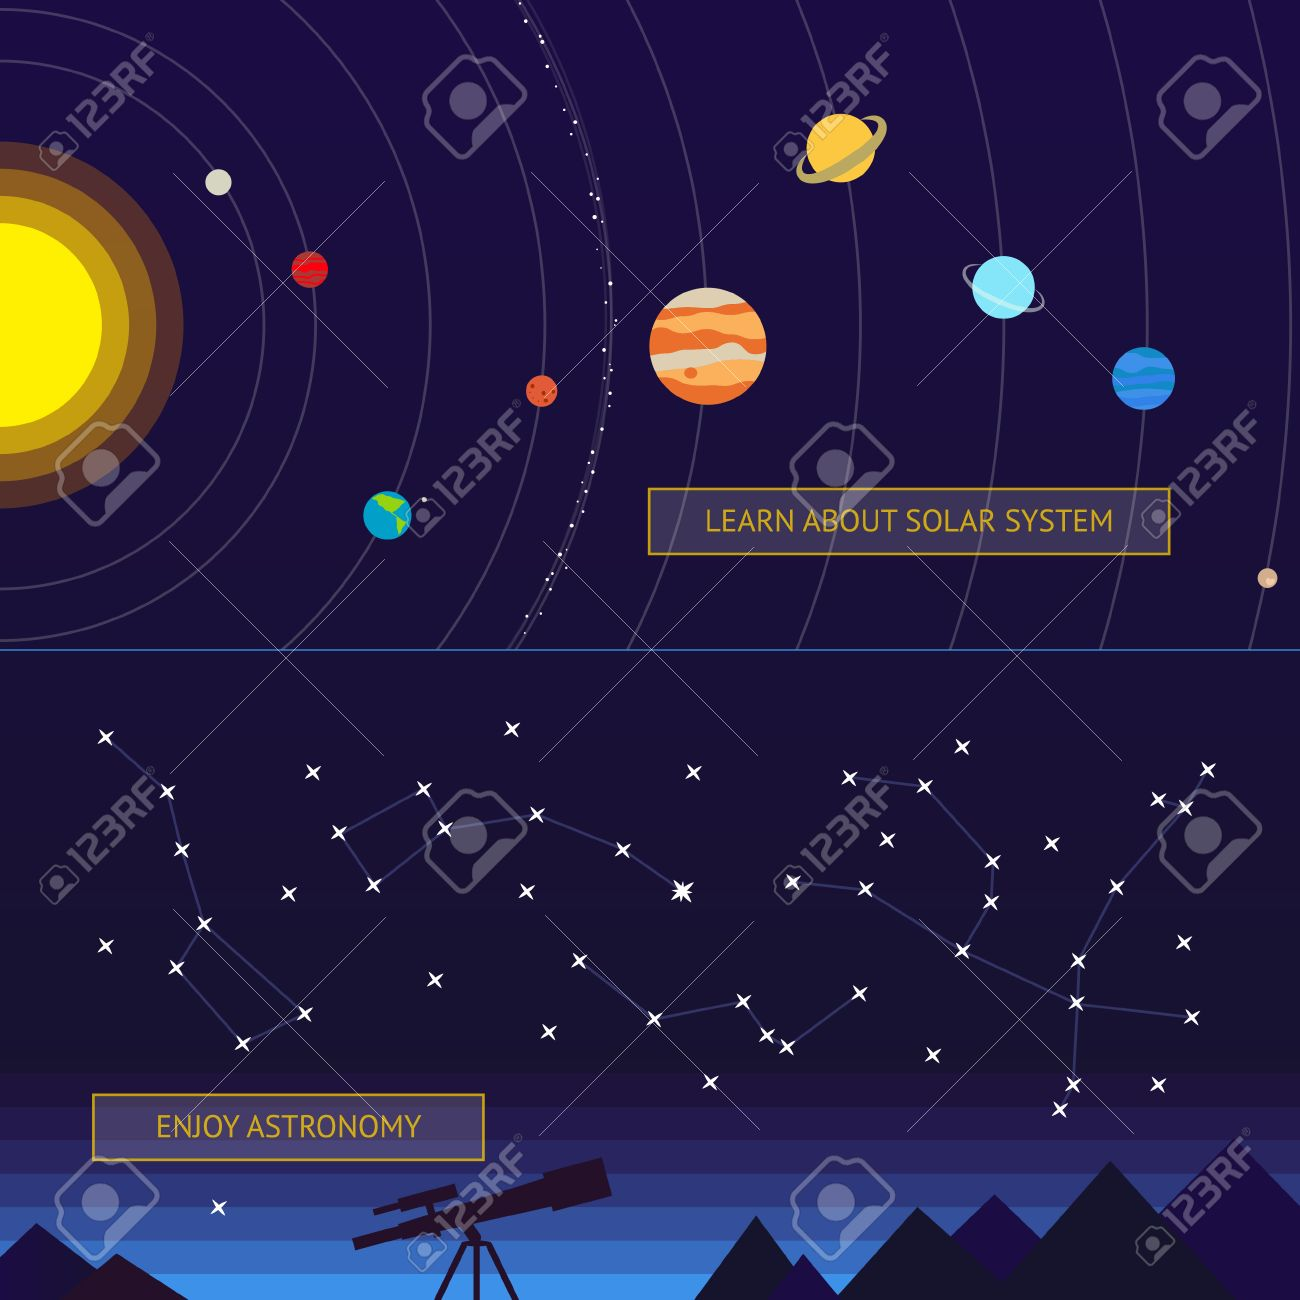 Set of space banners: Solar system model and constellations in